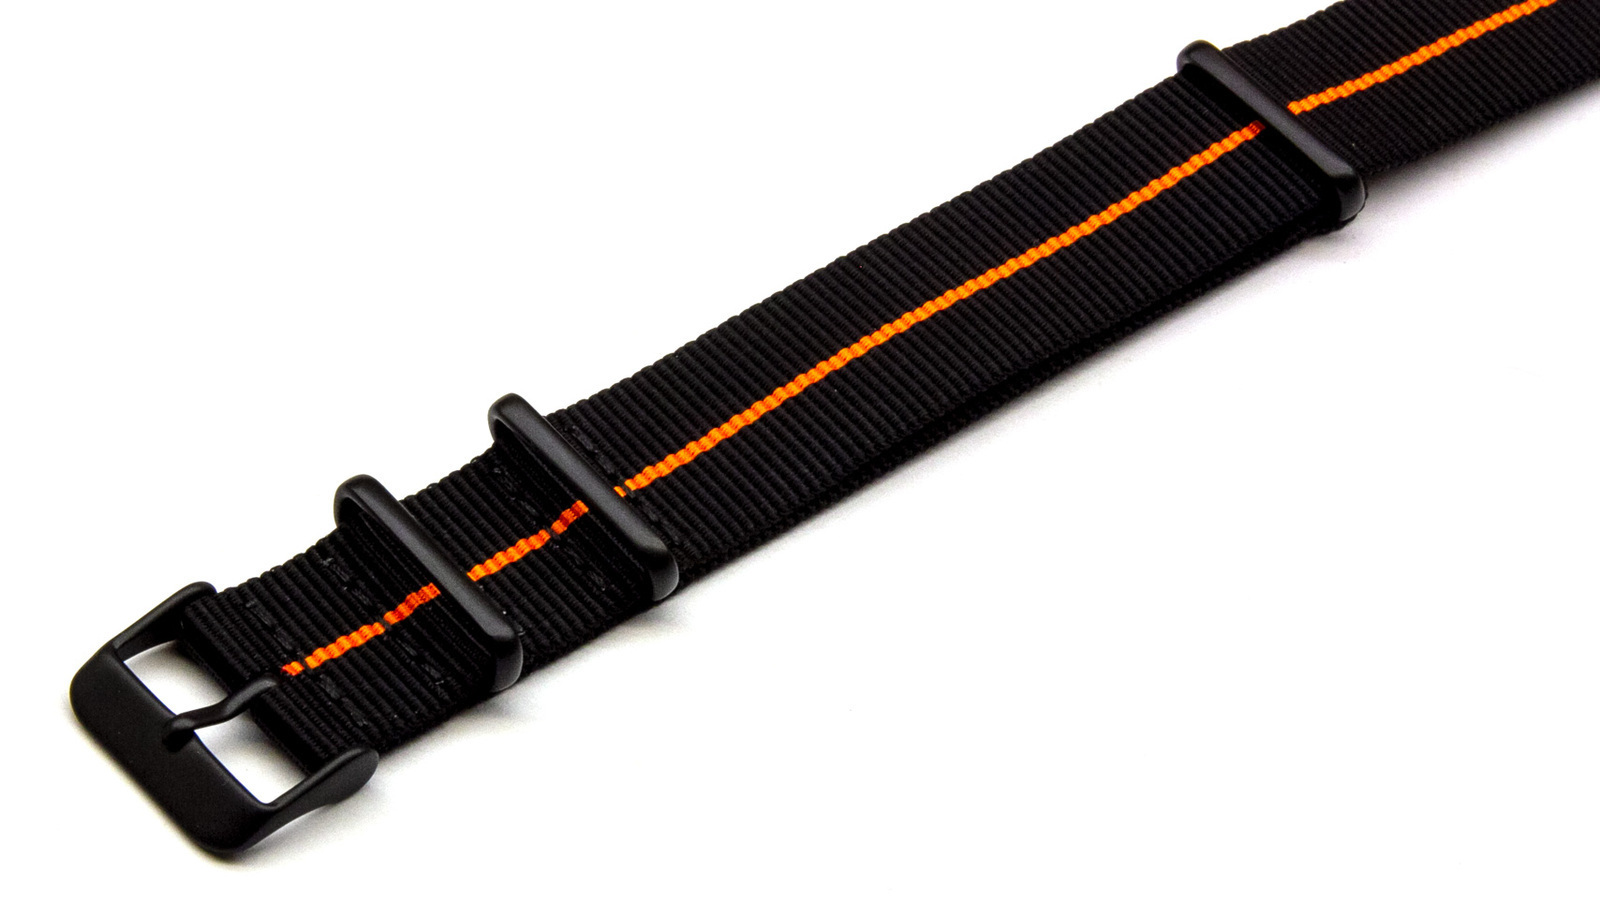 Charcoal Black & Orange watch strap with black PVD buckles